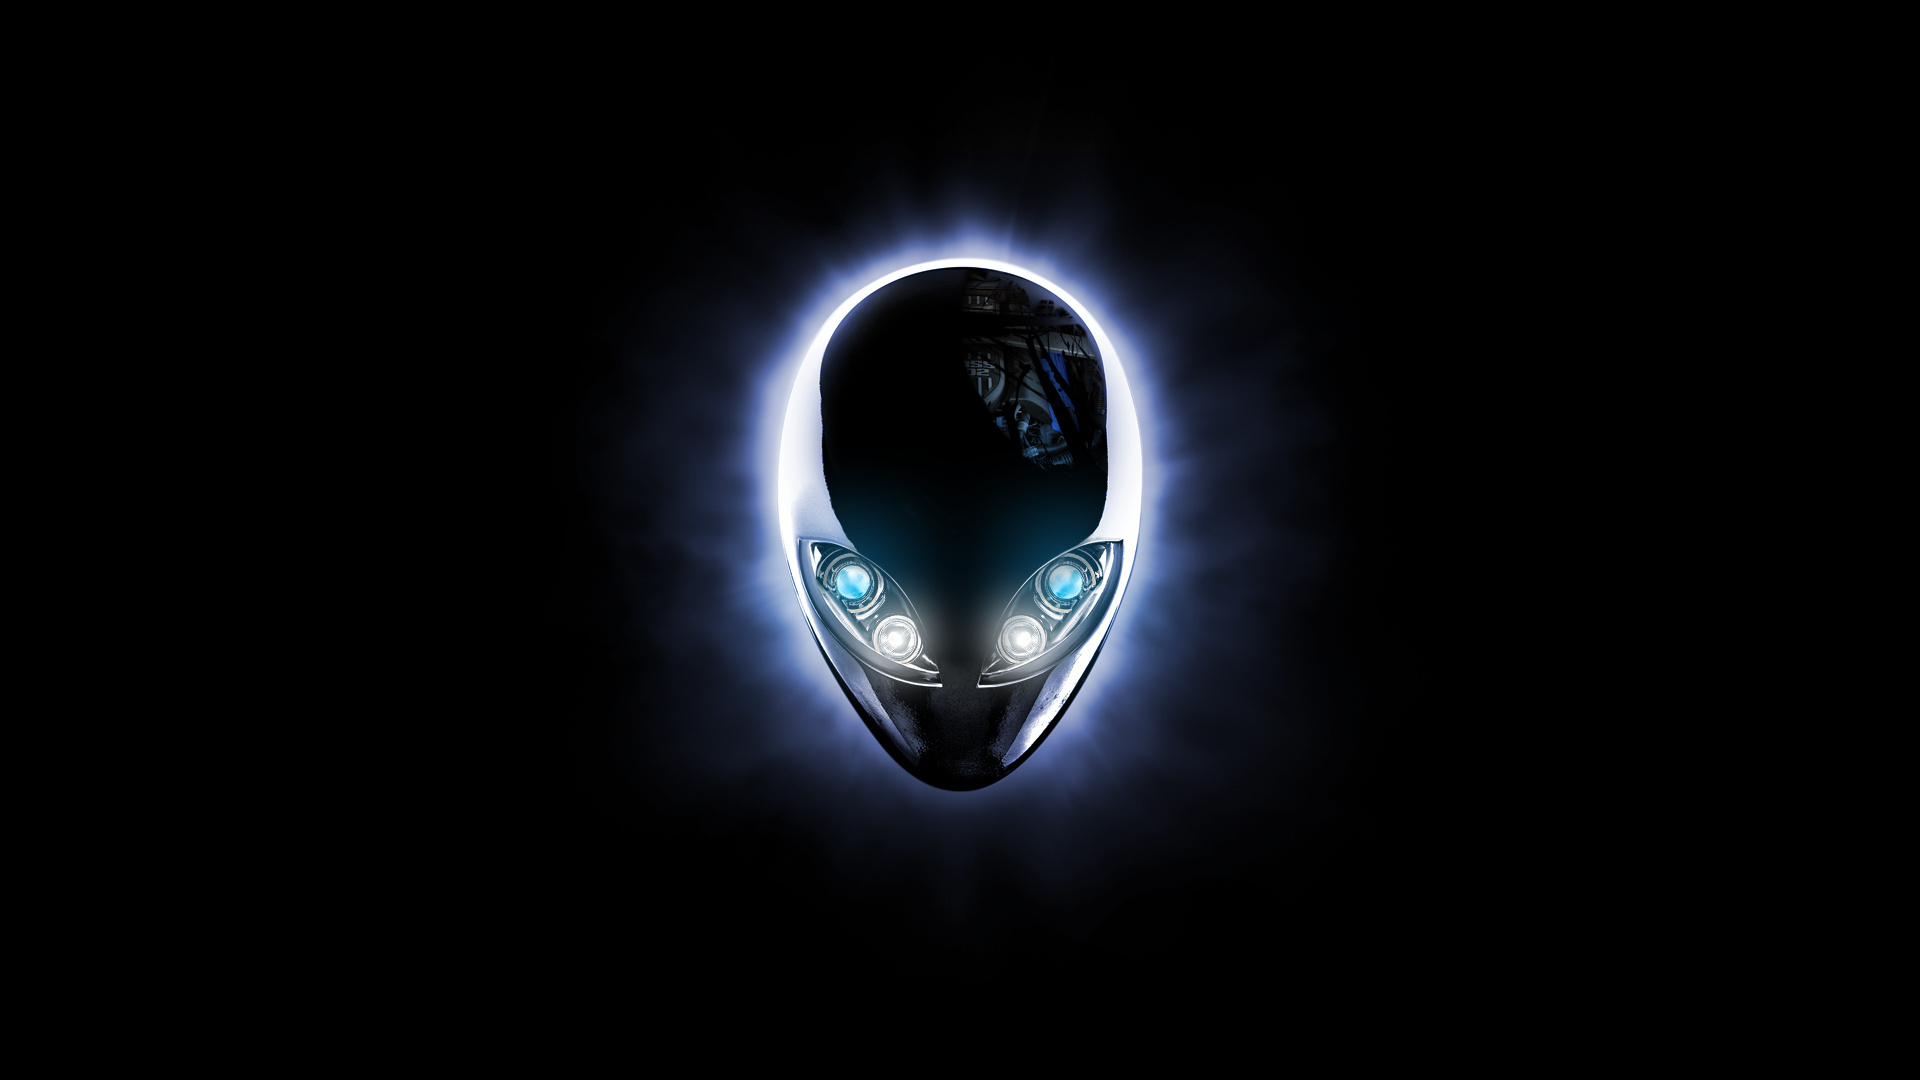 Engineer Alienware Wallpaper by sk8erpunk299 1920x1080